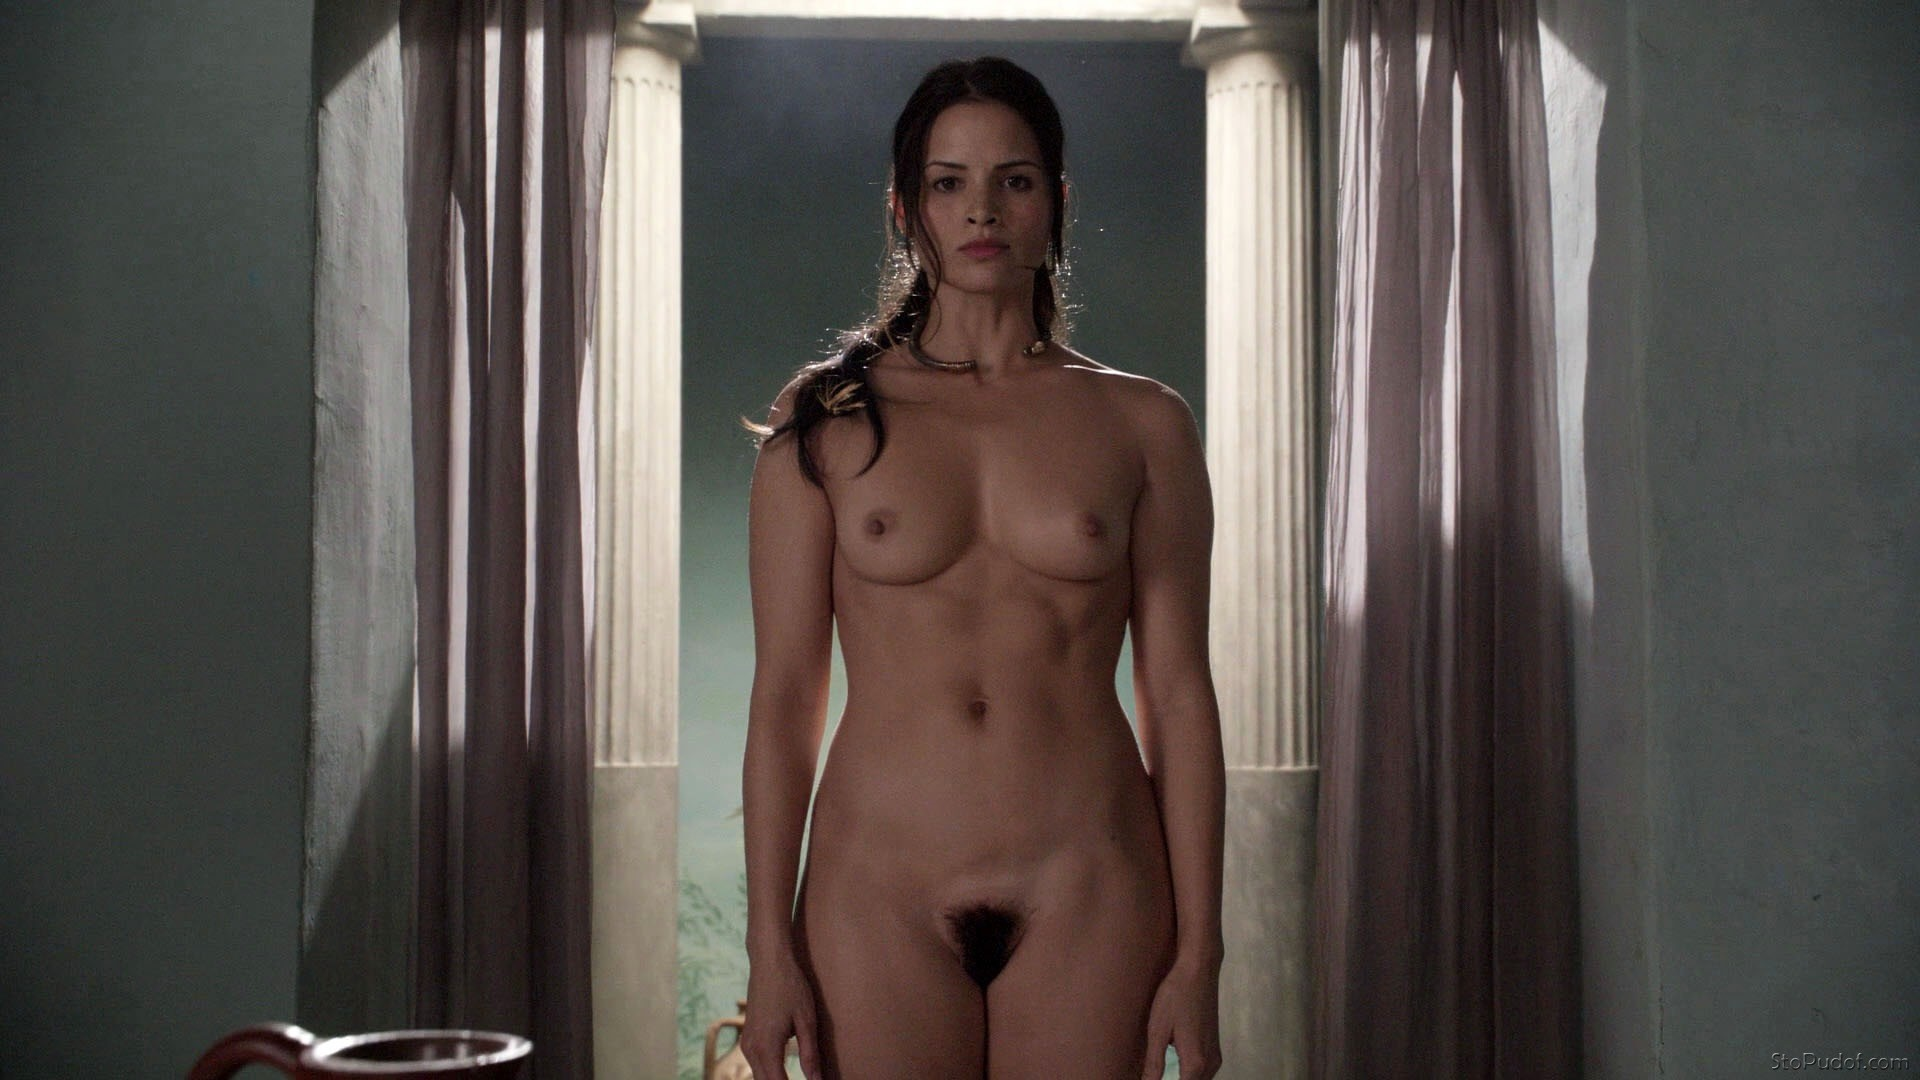 photo naked Katrina Law - UkPhotoSafari